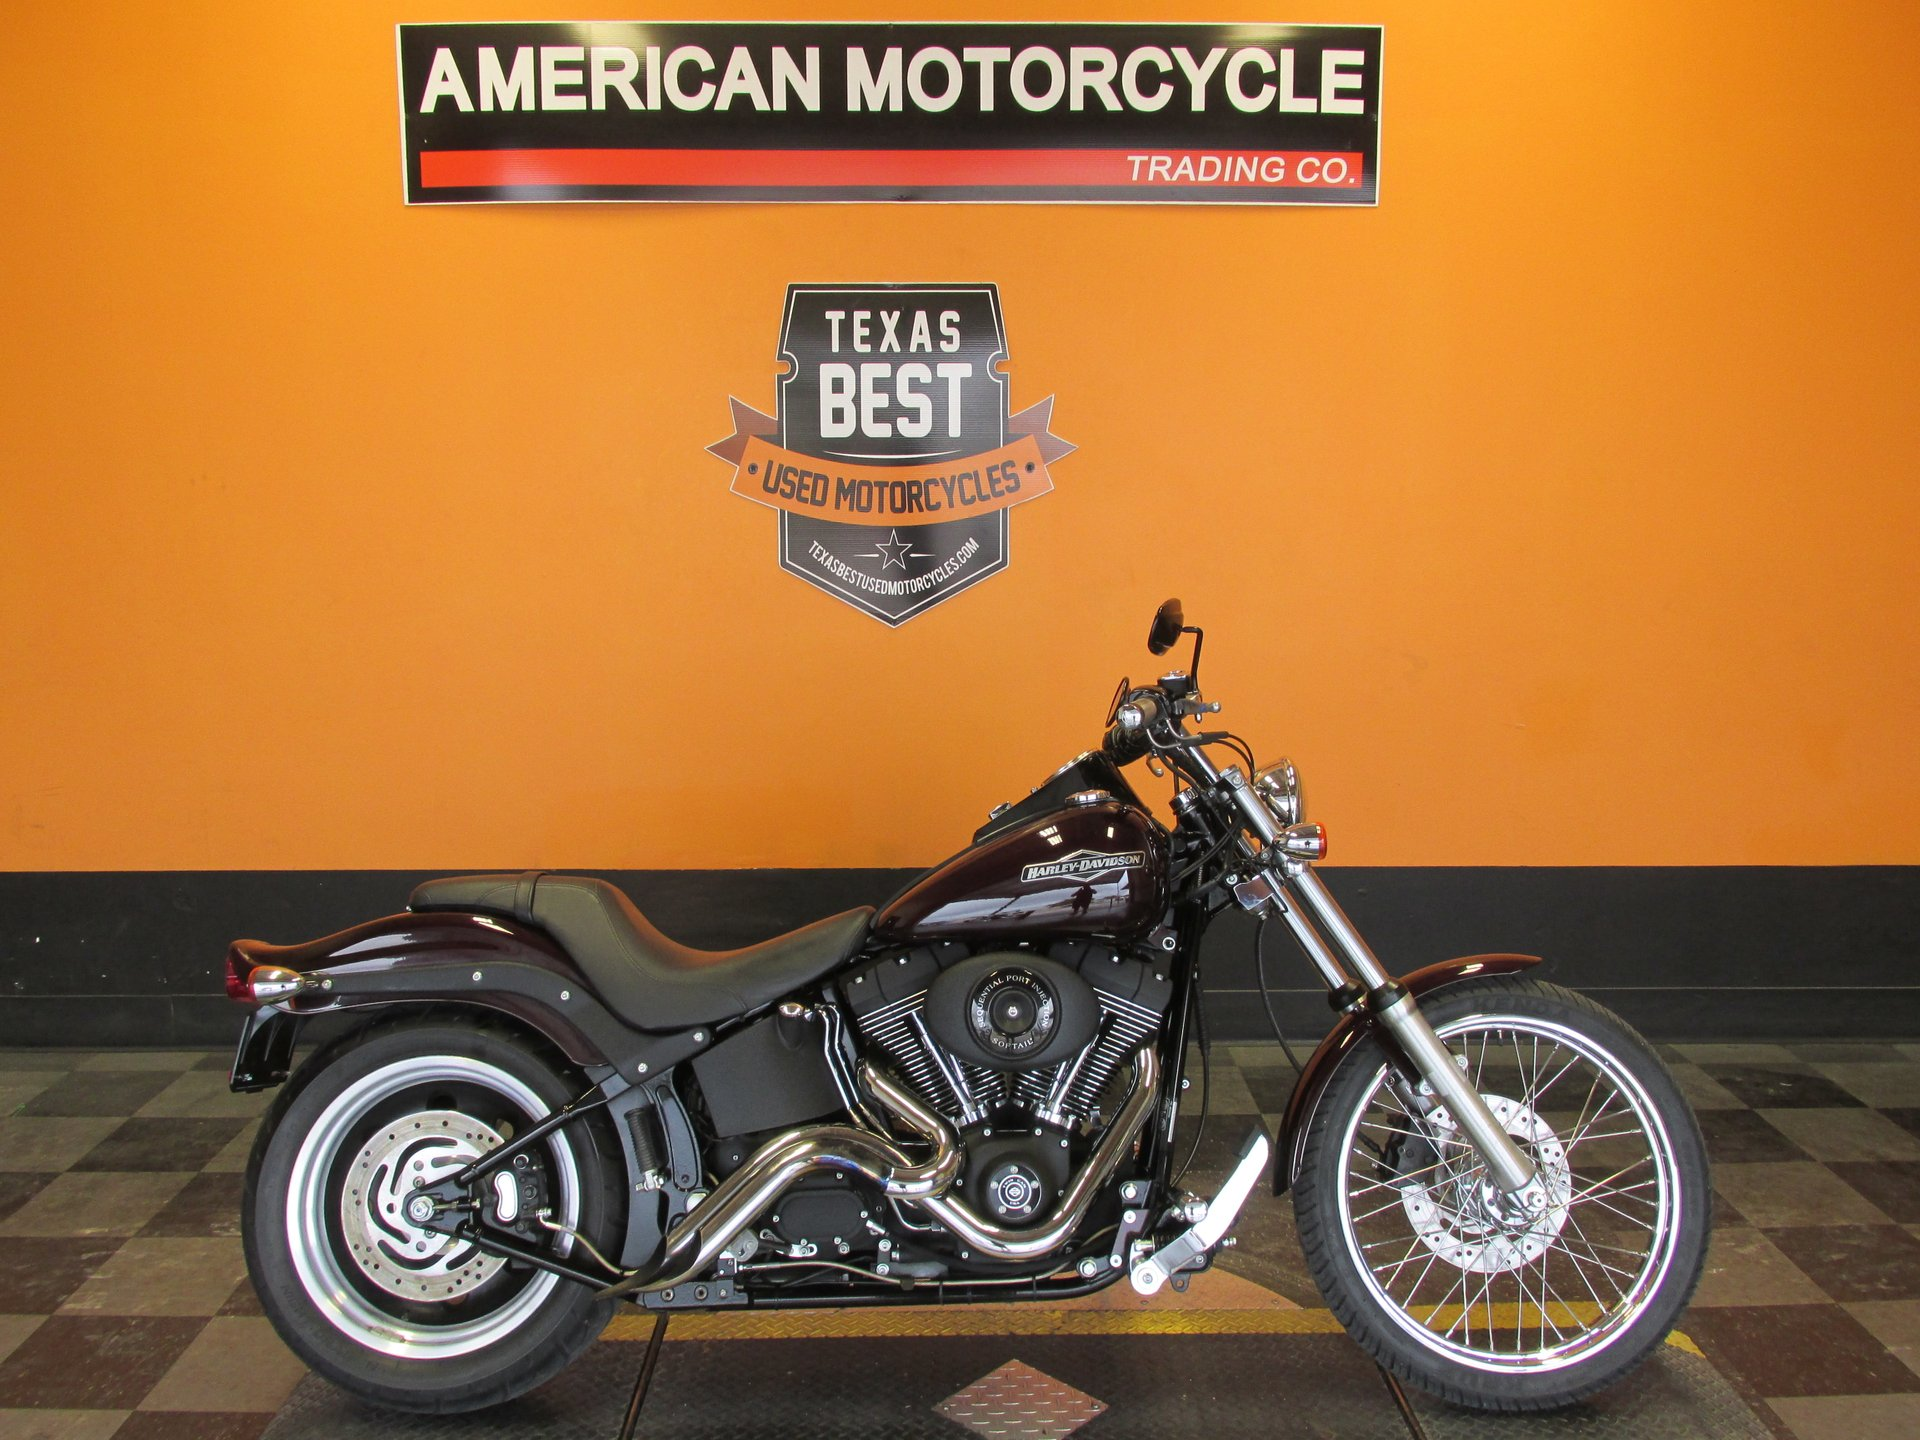 2006 harley davidson softail night train fxstbi